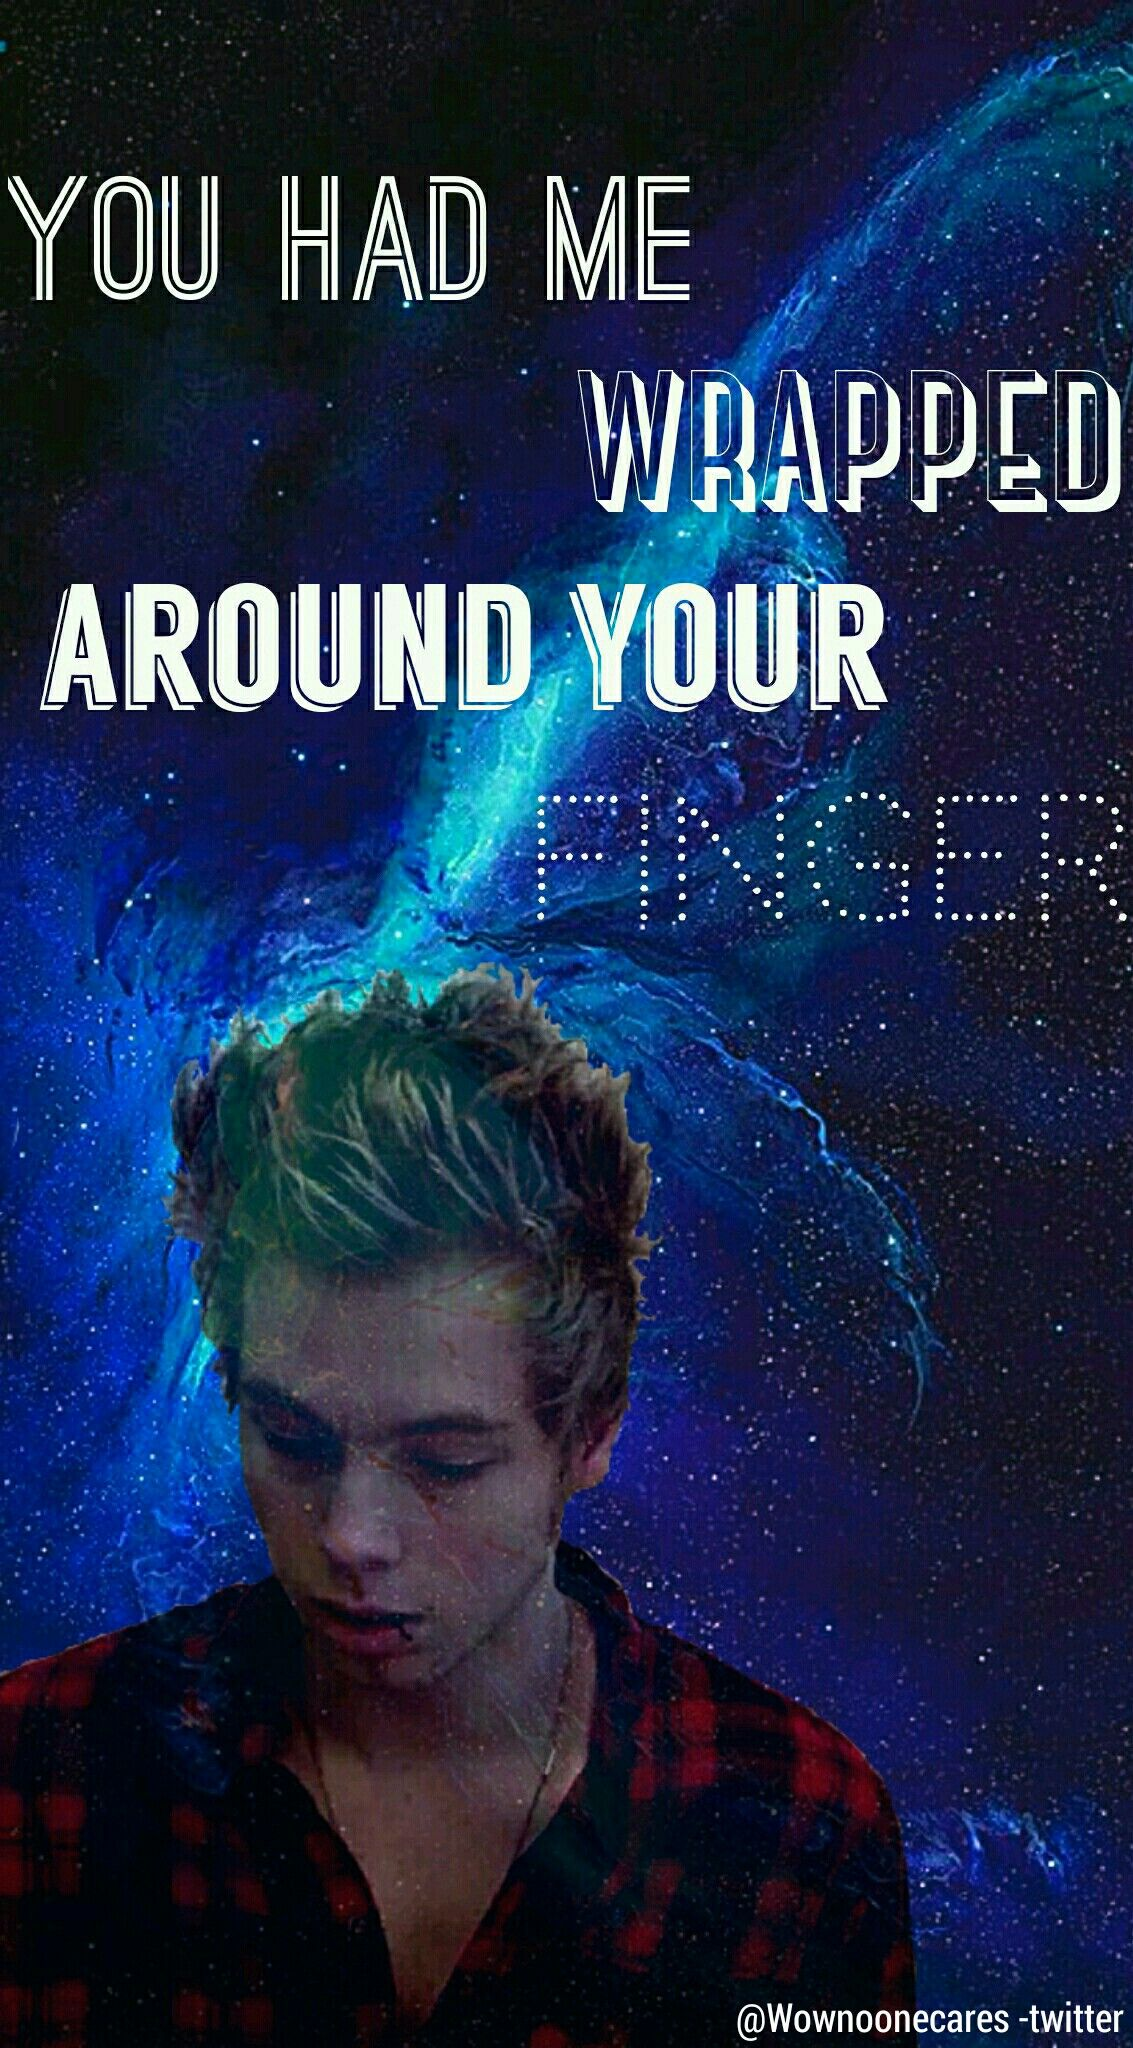 5 seconds of summer wallpaper // Wrapped around your finger